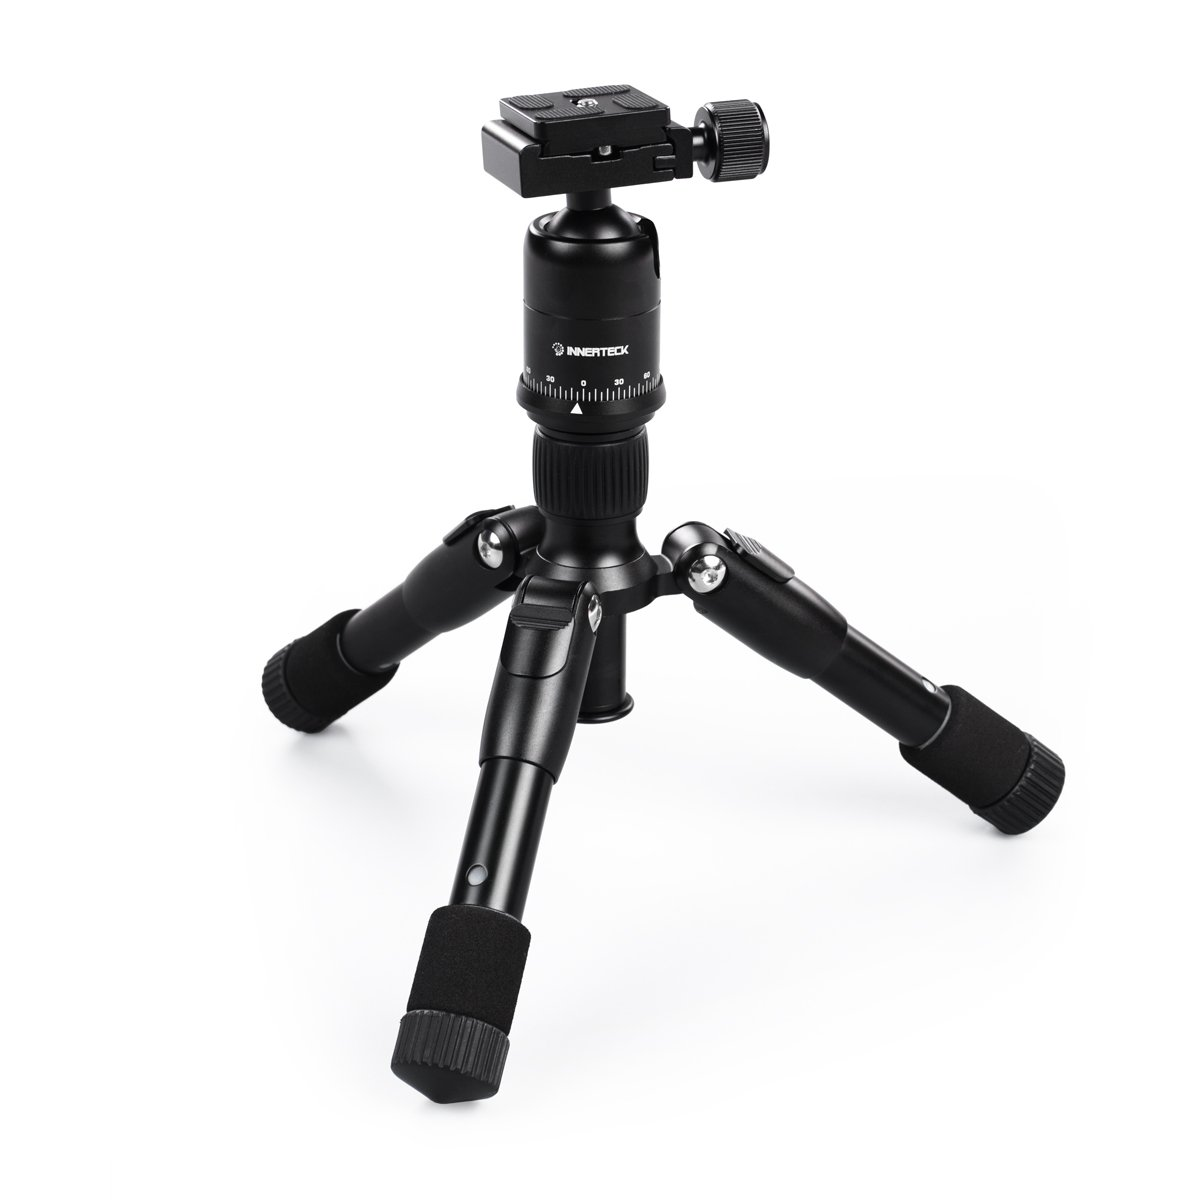 Tripod Mini Folding, Camera Tripod with 360 Ballhead Quick Shoe PlateB for DSLR EOS Canon Nikon Sony Samsung - Travel Portable Tripod Innerteck IT001